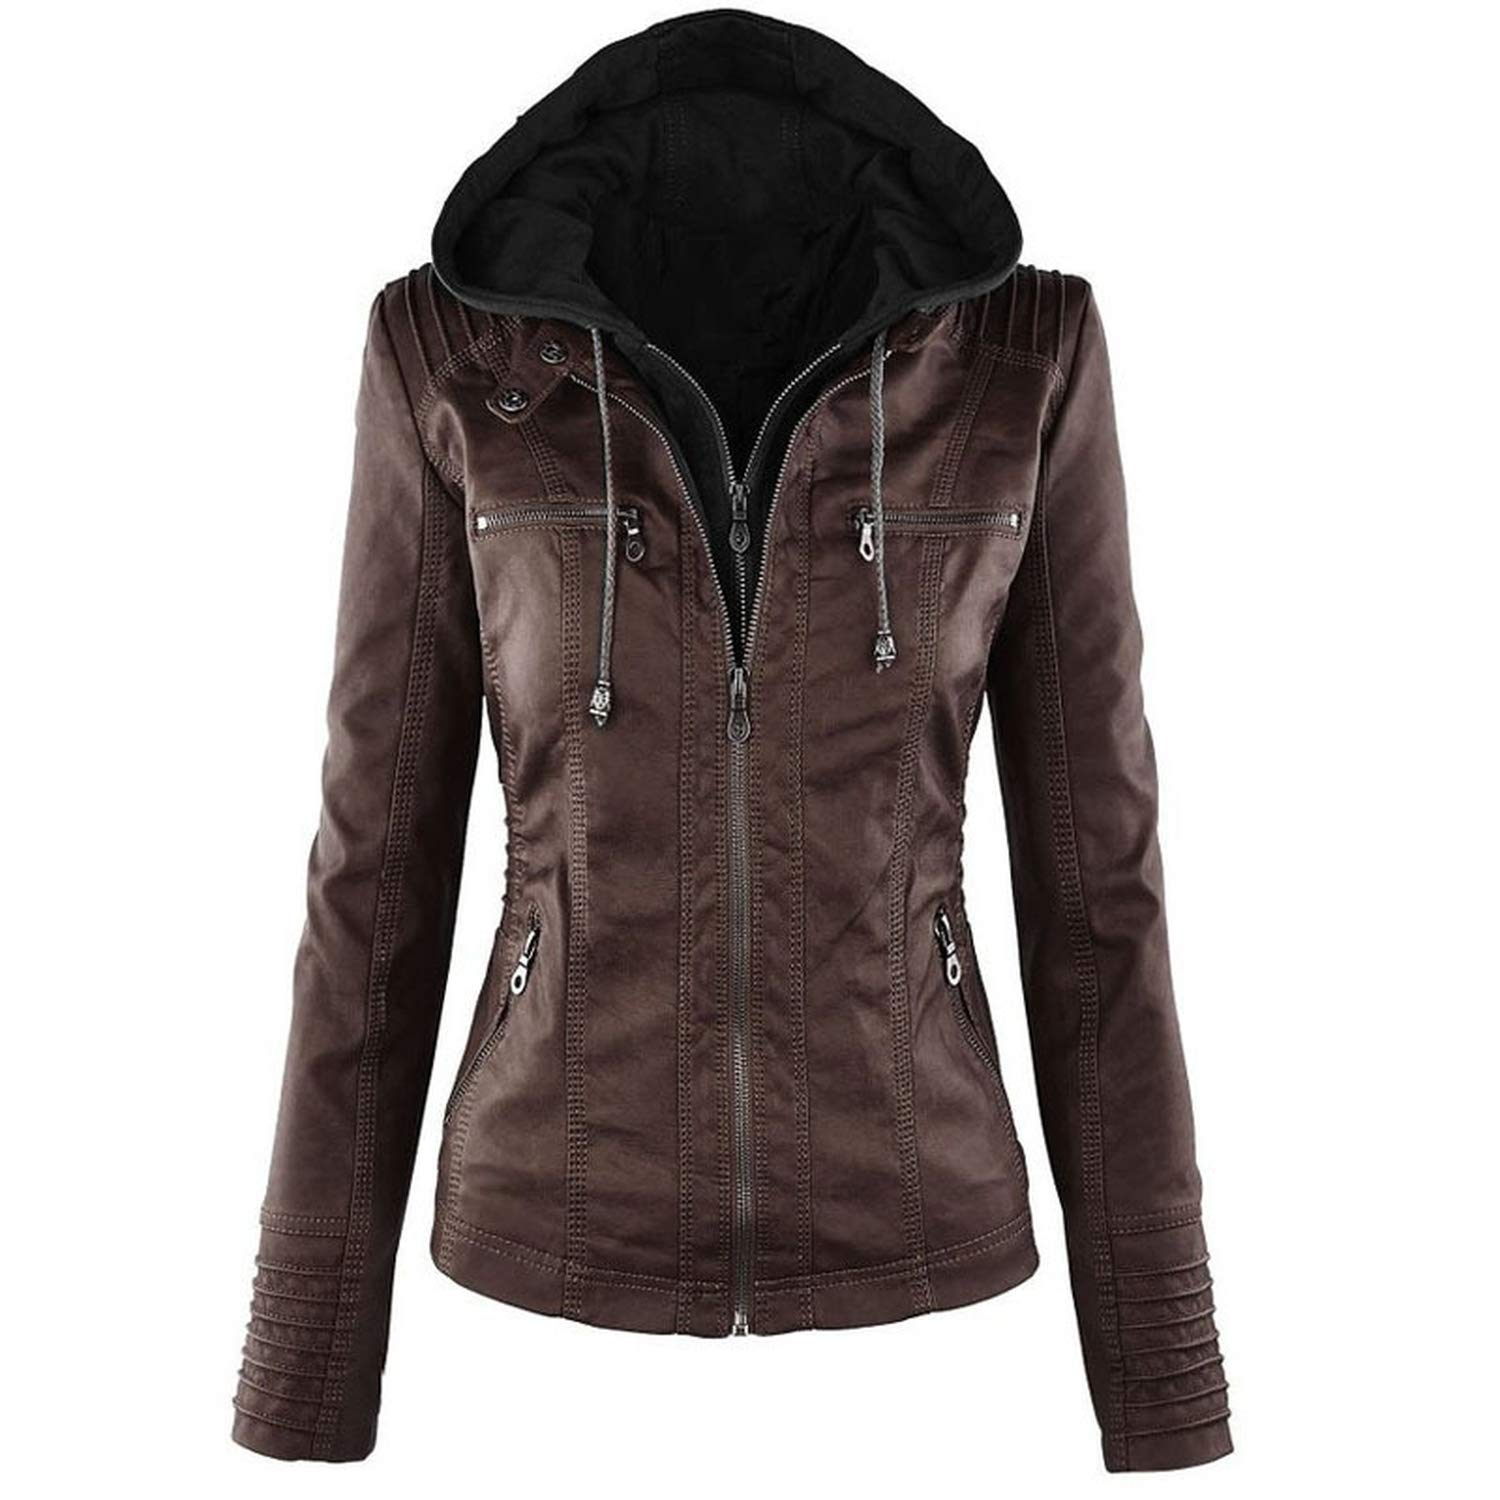 Chiced Leather Jacket Women Autumn Winter Outerwear Coat Lady Pu Leather Clothing Female Motorcycle Jackets